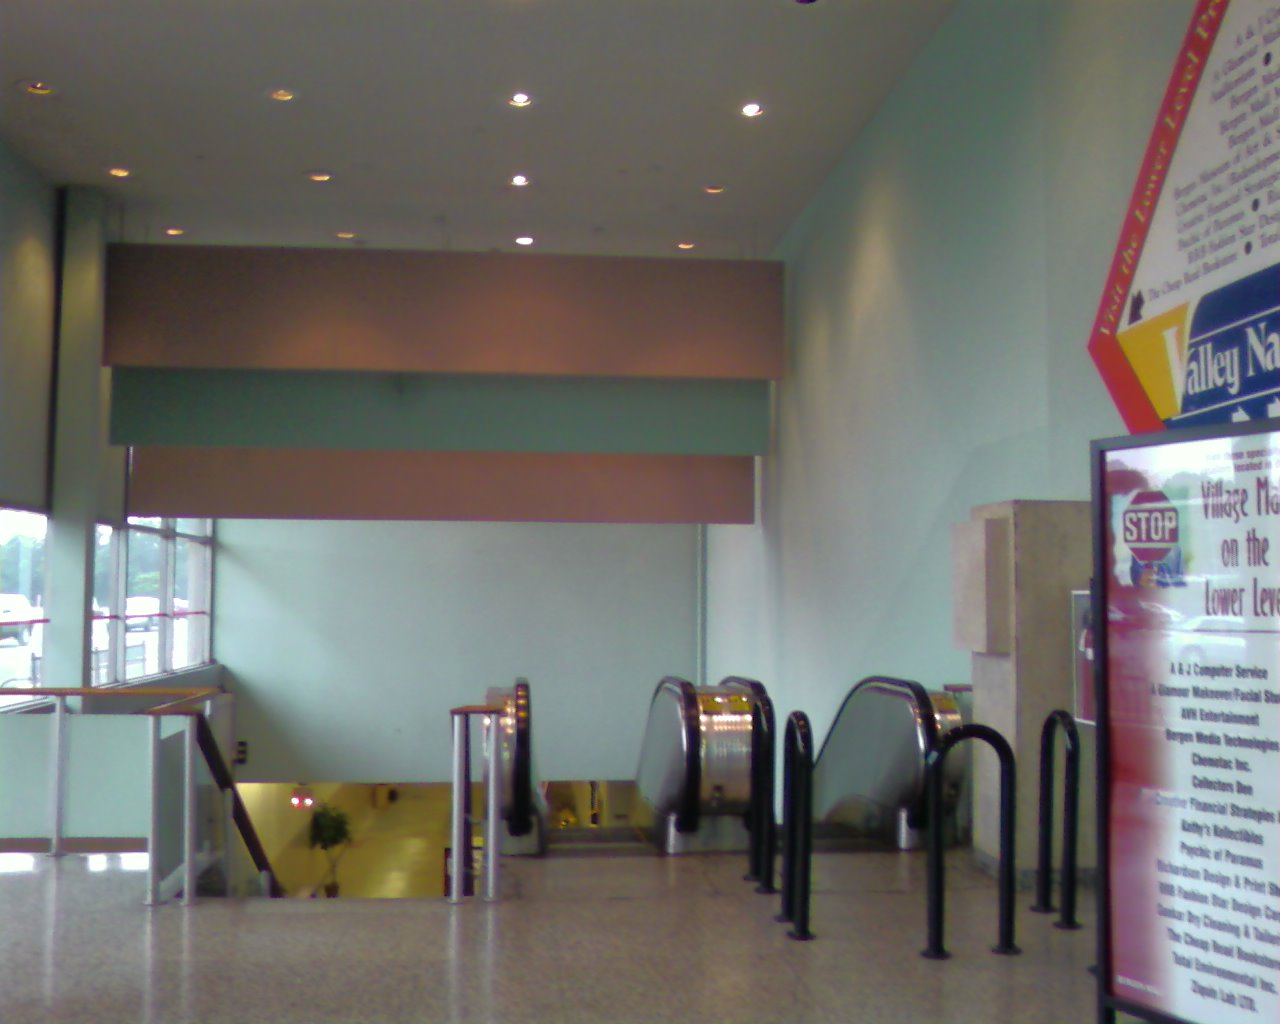 Escalators to basement in the Bergen Mall in Paramus, NJ